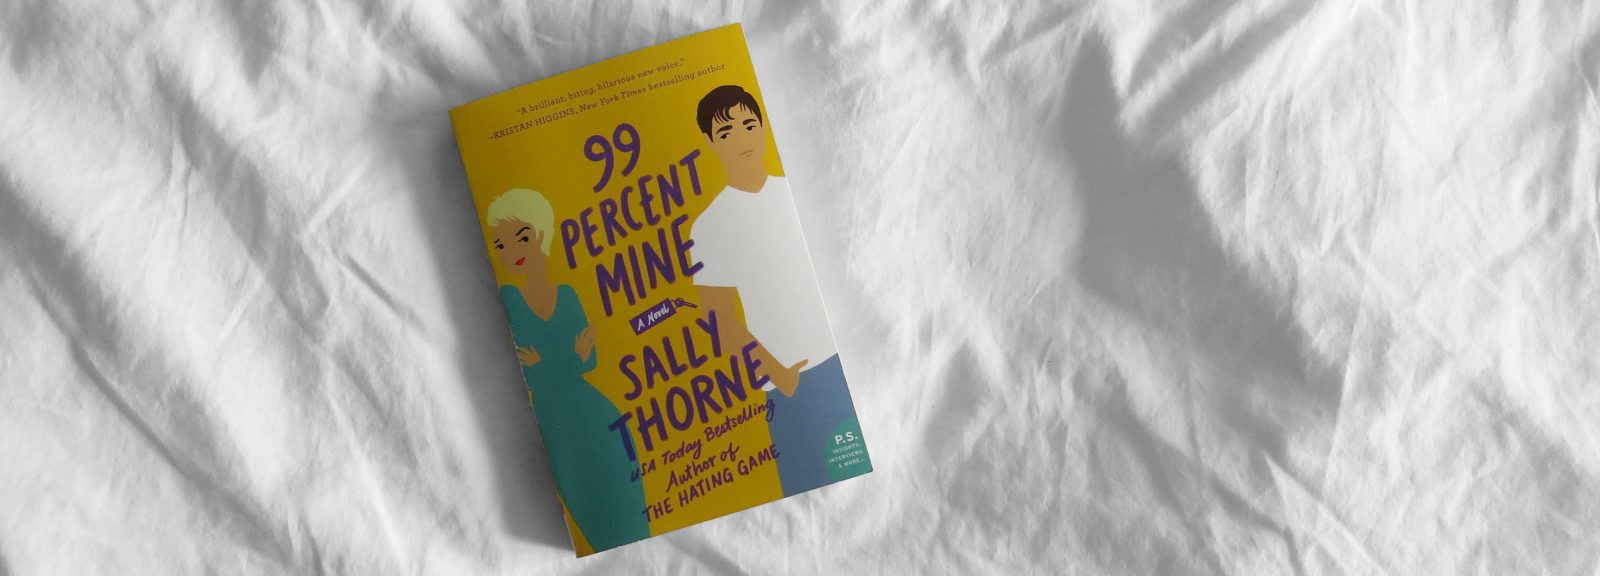 Review | 99 Percent Mine by Sally Thorne